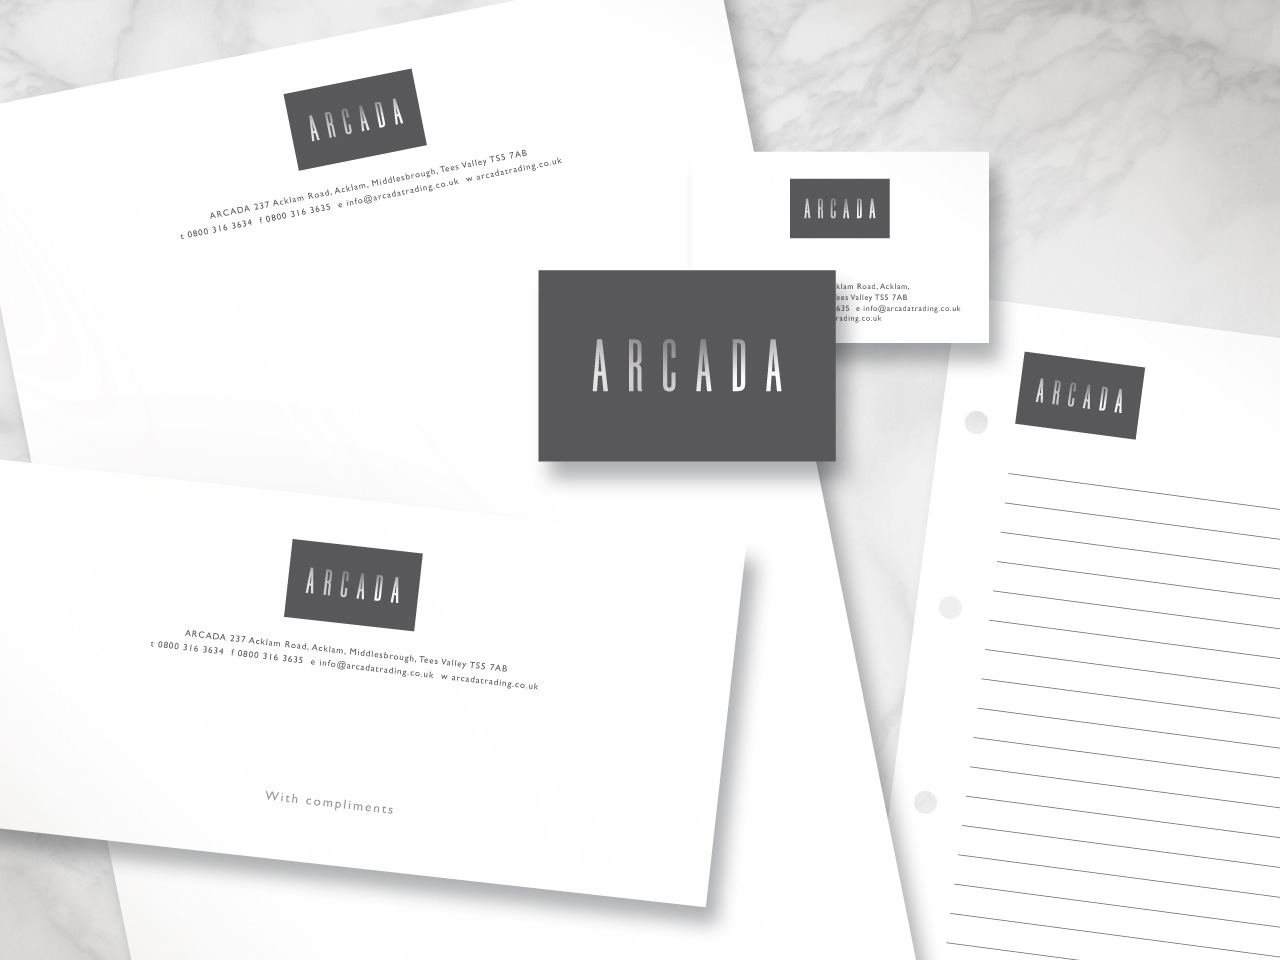 Arcada corporate identity and stationery